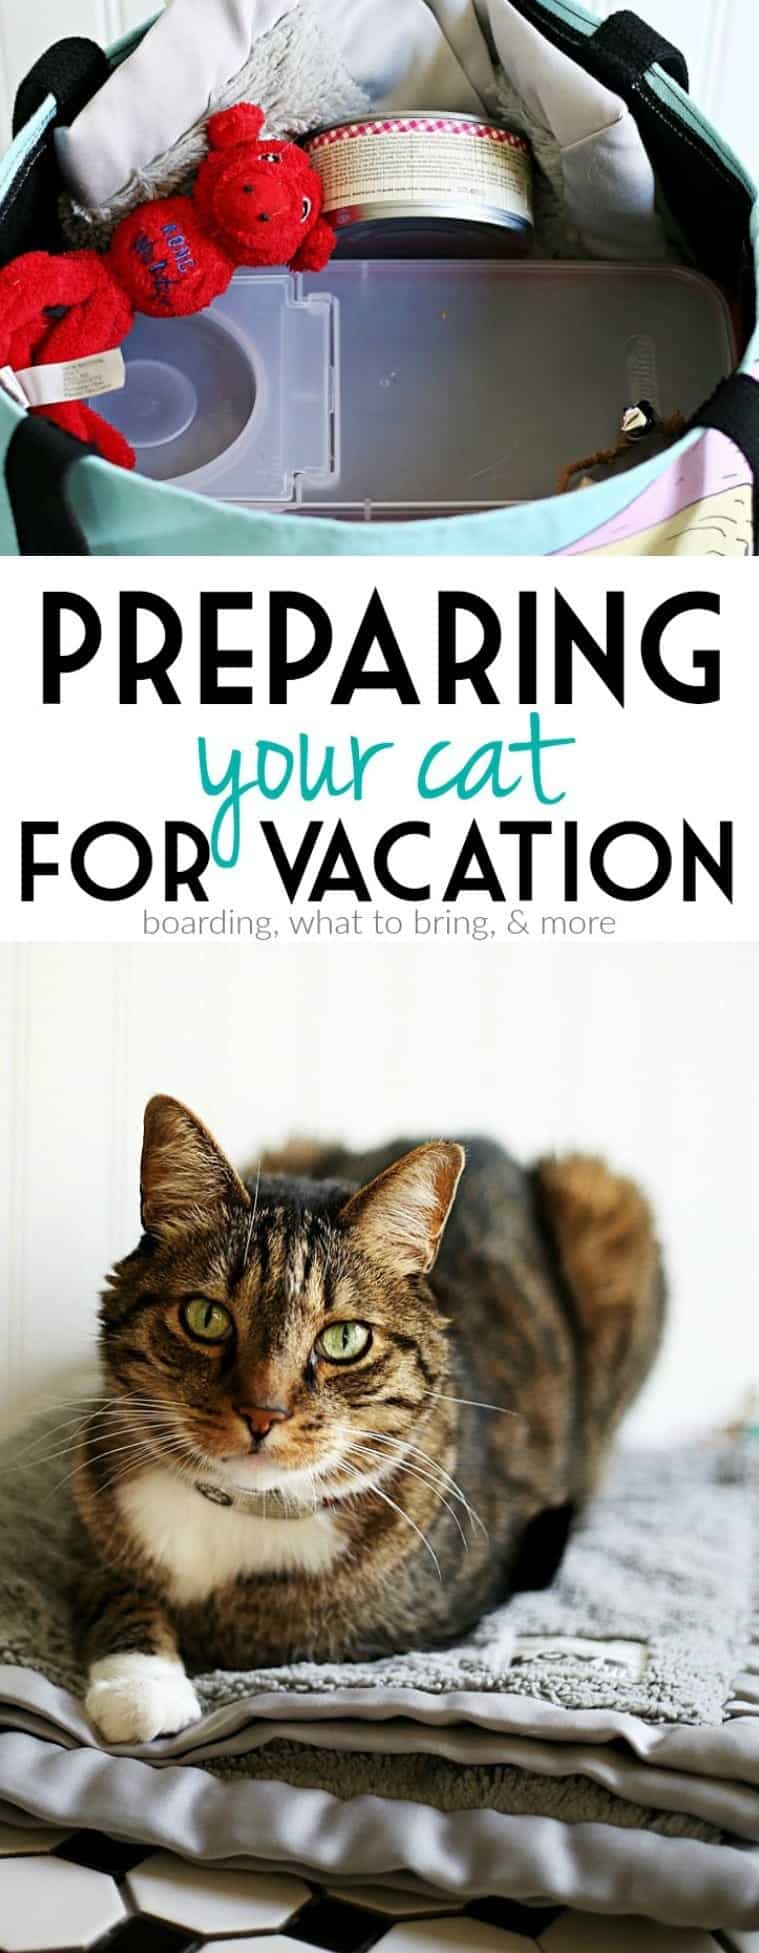 Preparing Your Cat For Vacation And Boarding Anti June